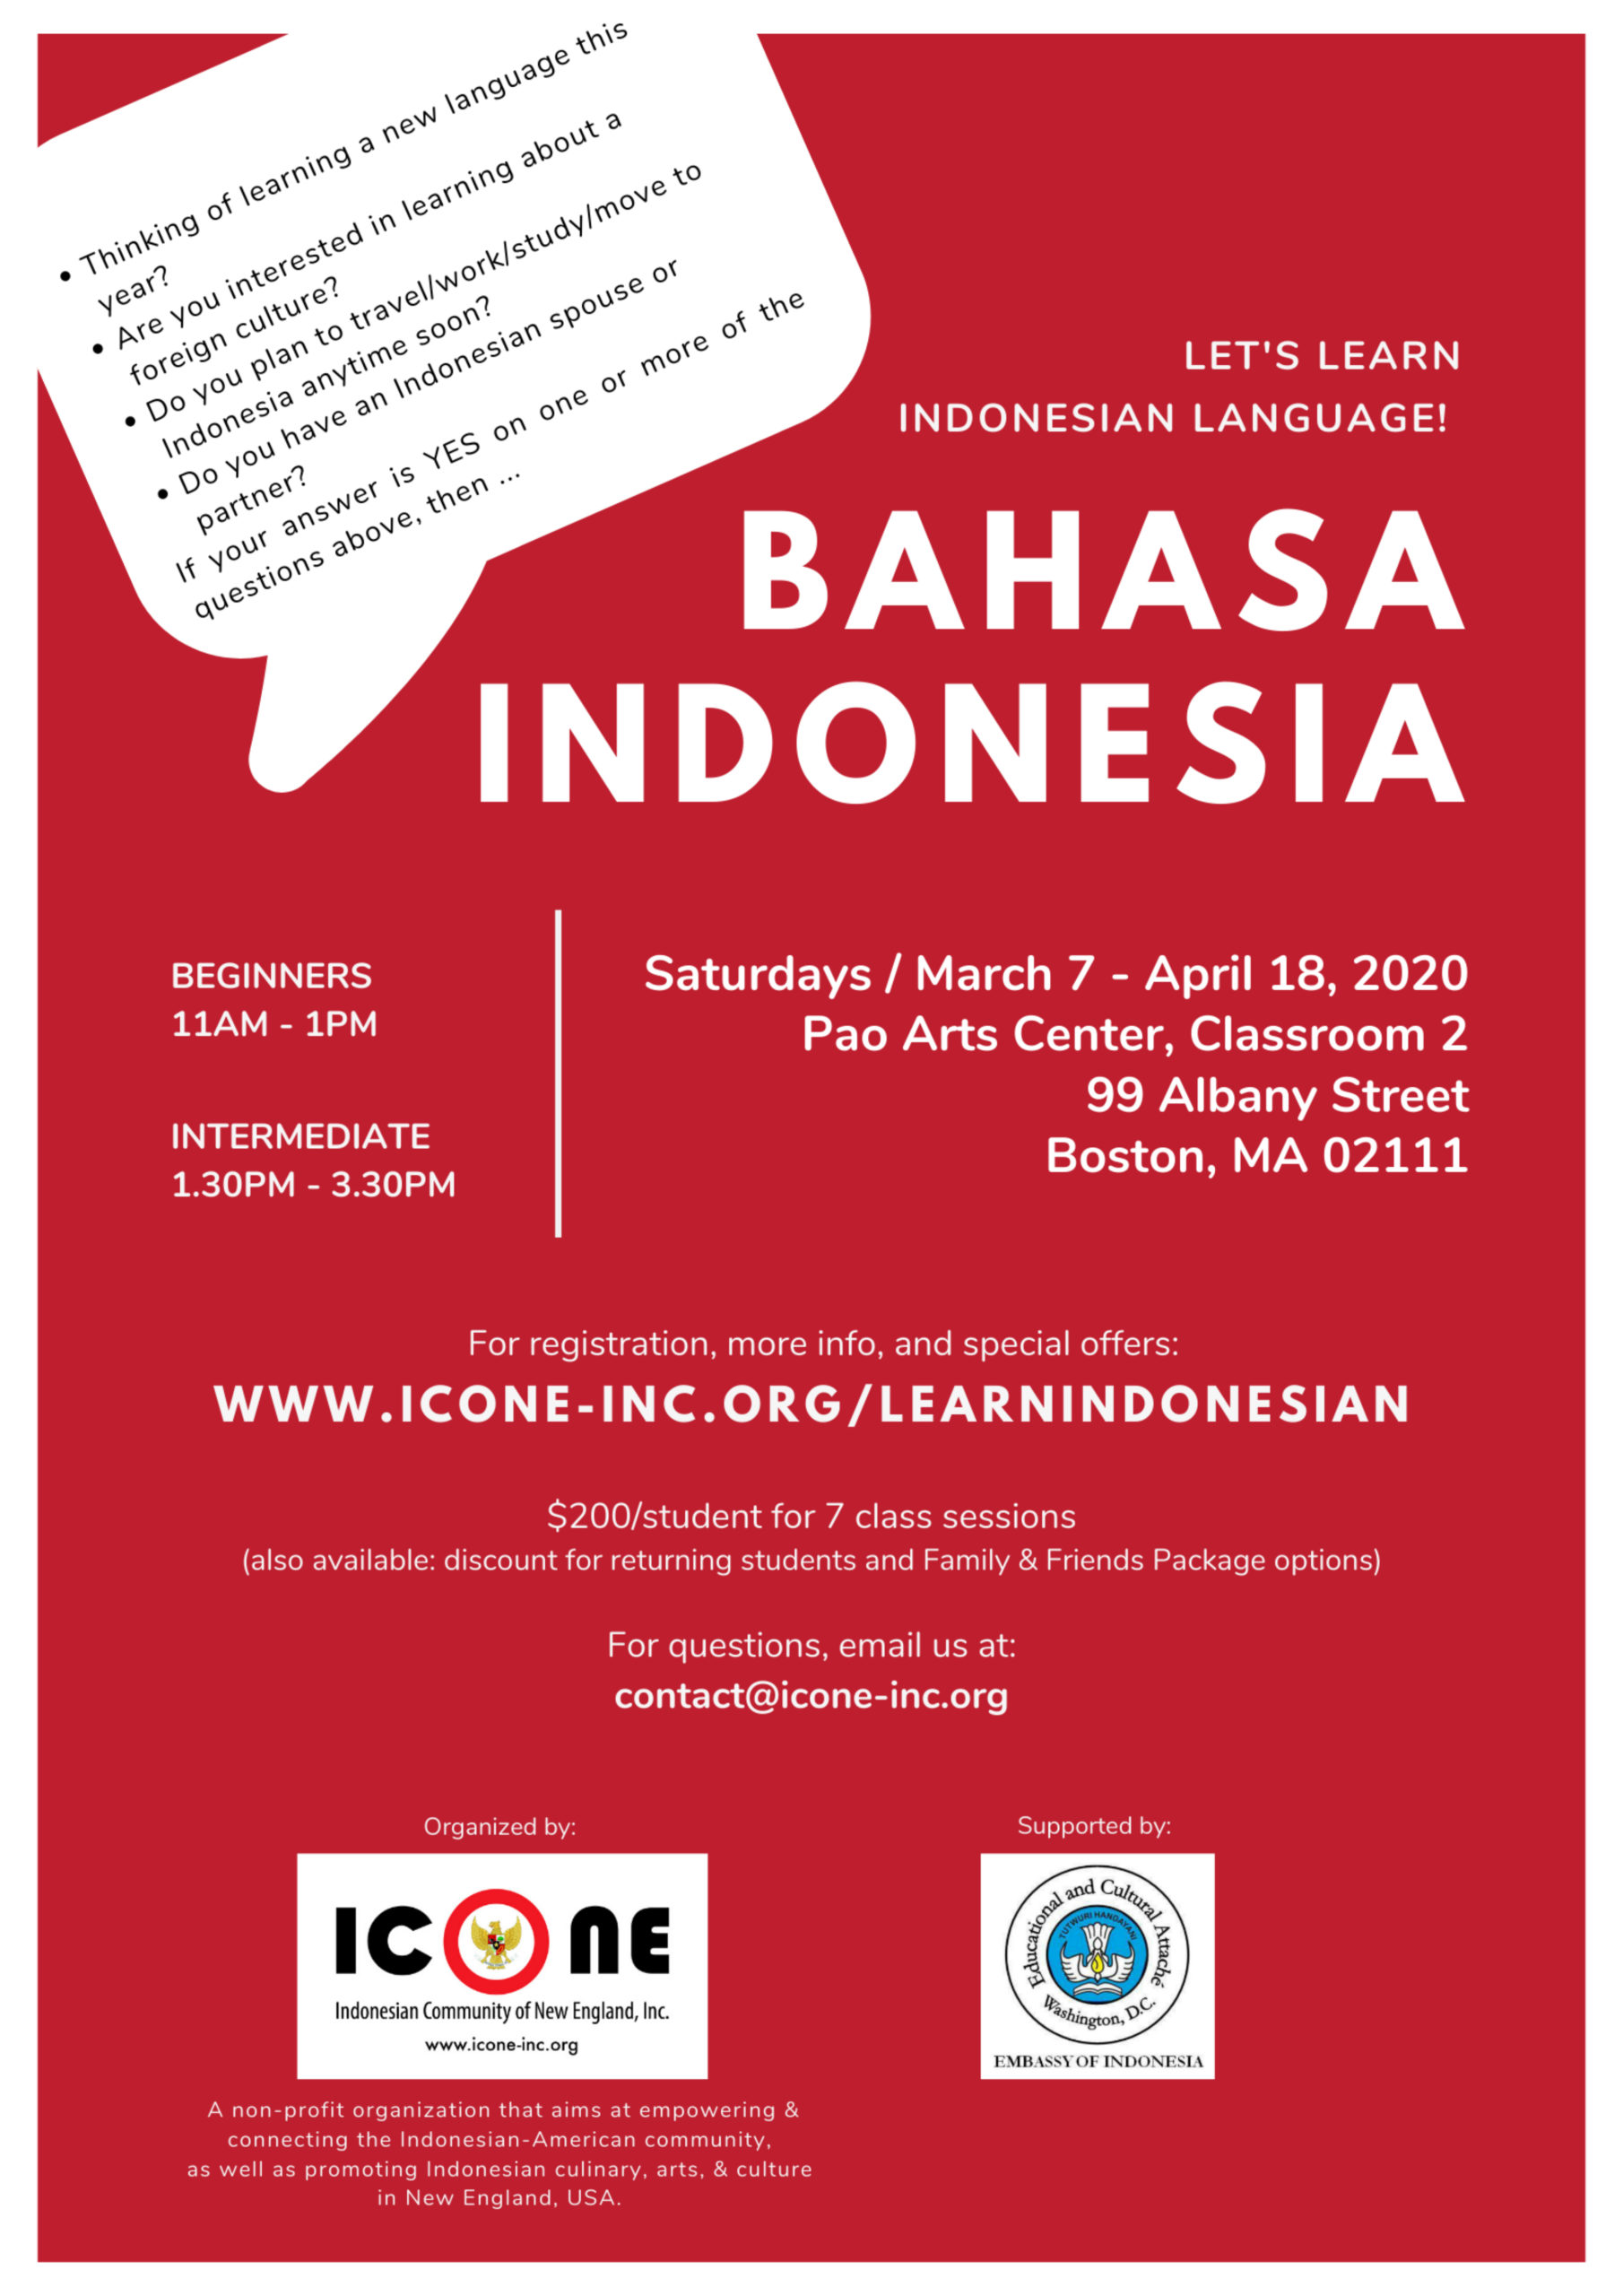 Bhs Indonesia poster FINAL